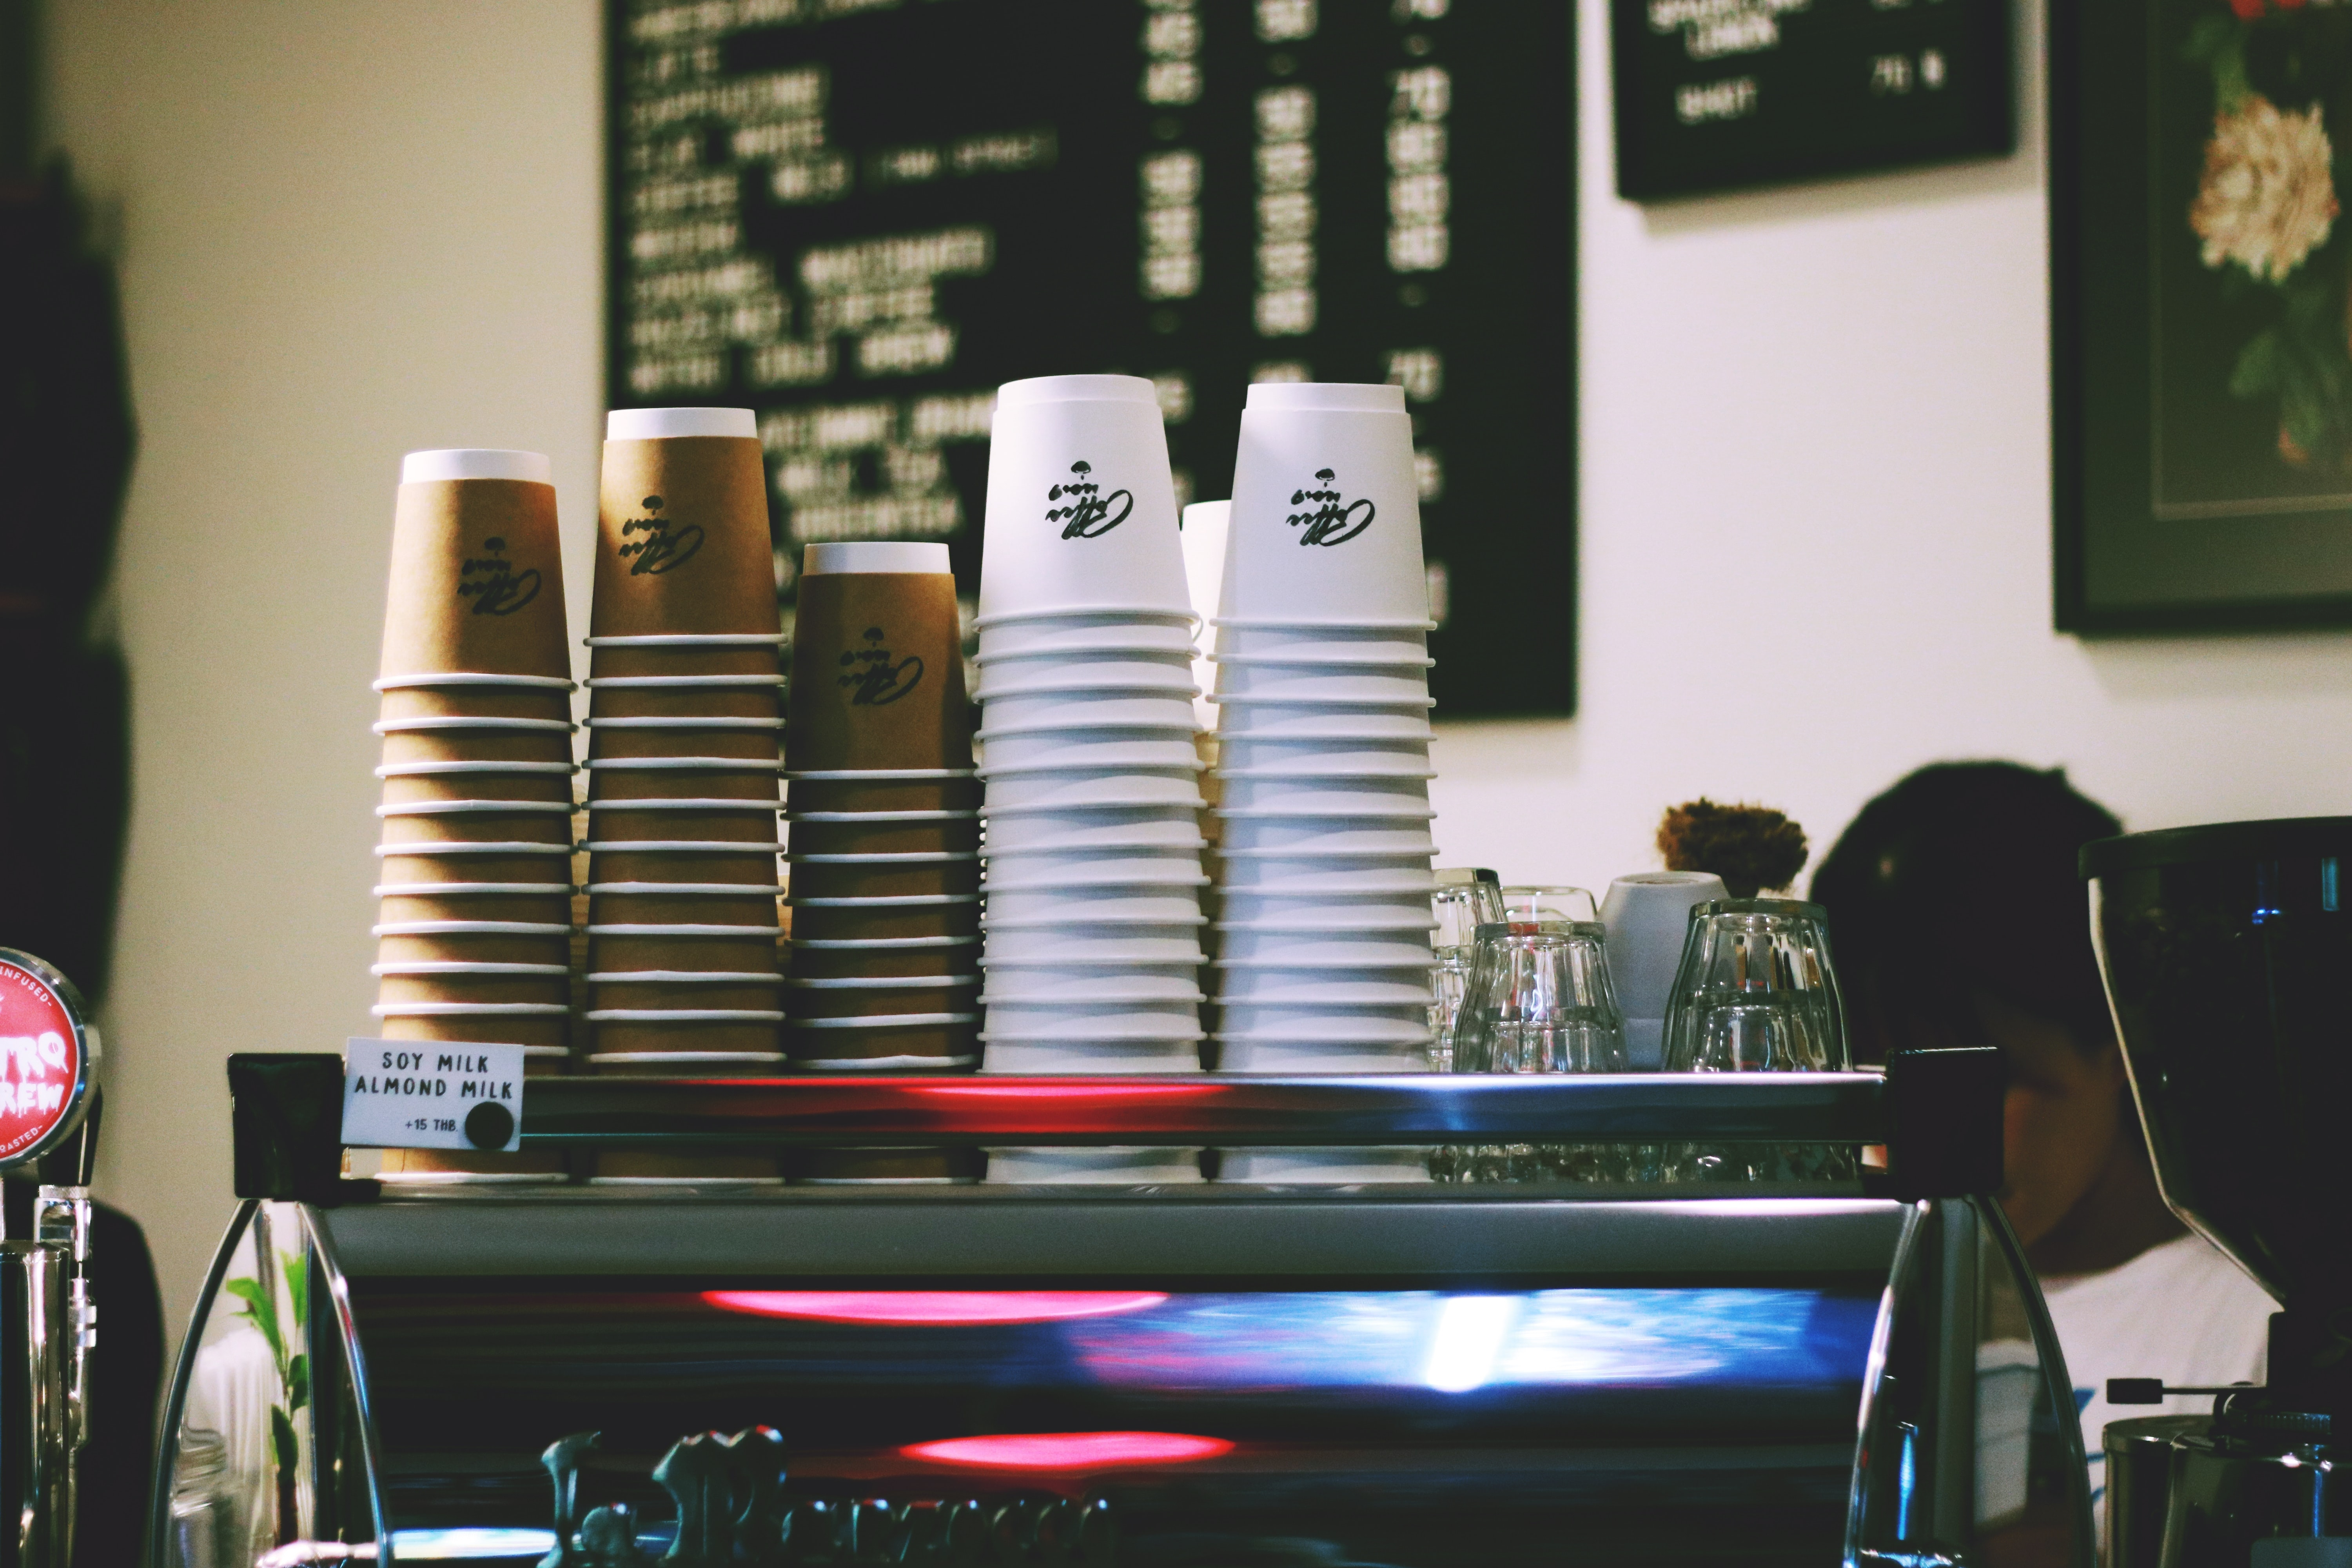 stacked of white and brown disposable cups on espresso maker